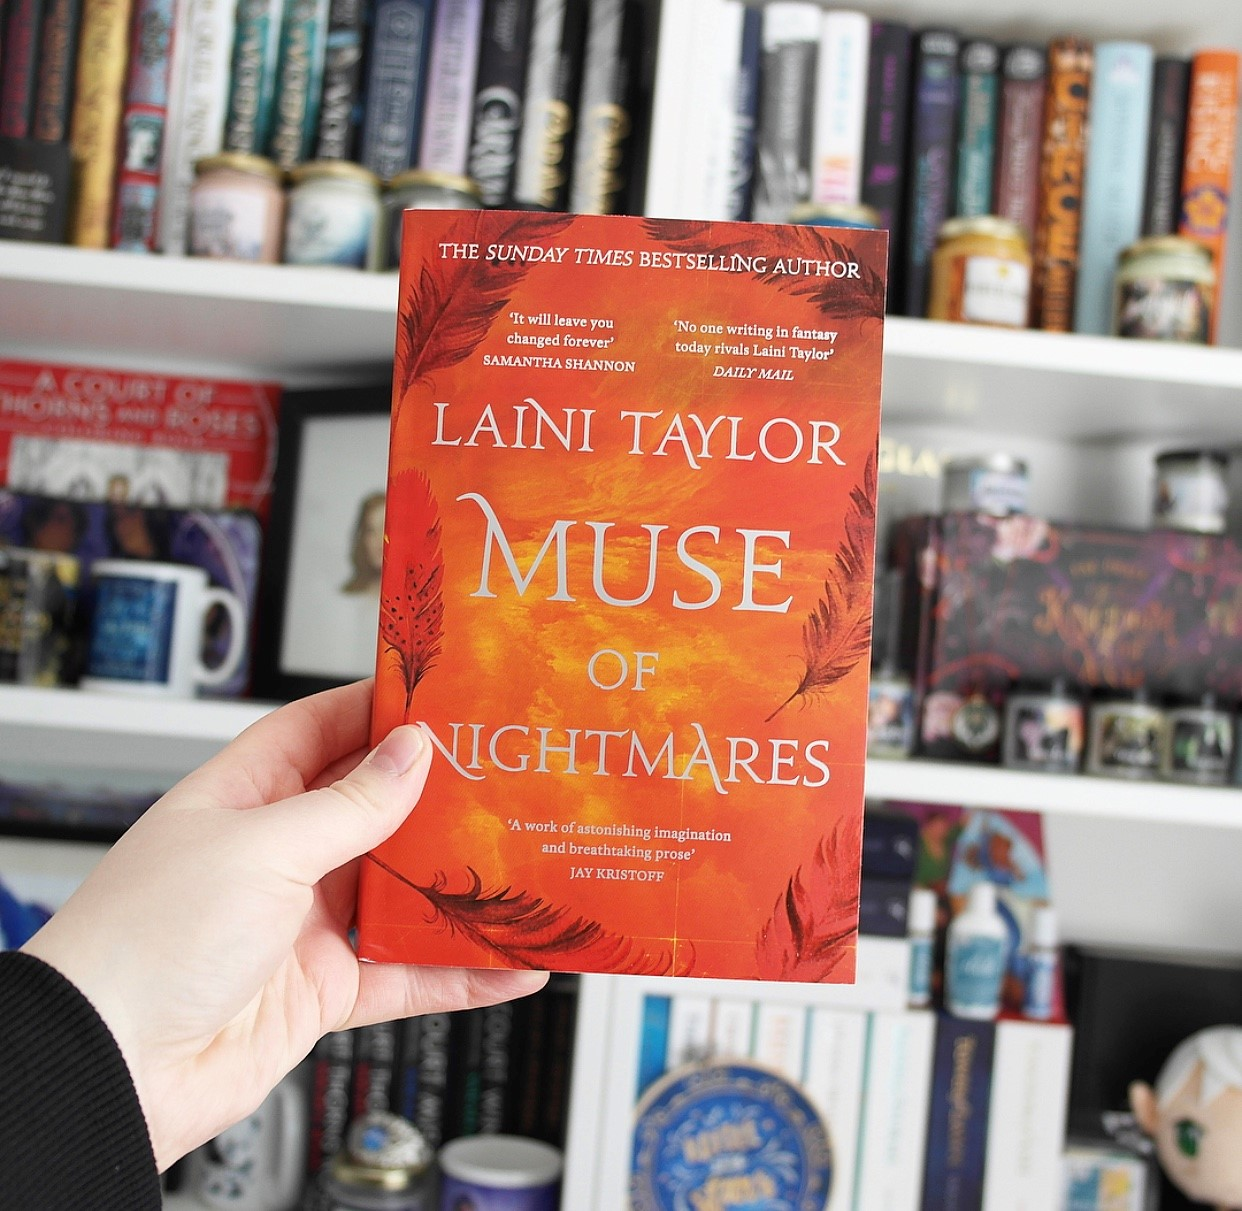 The red paperback edition of Muse of Nightmares is held in front of Amy's bookcases.